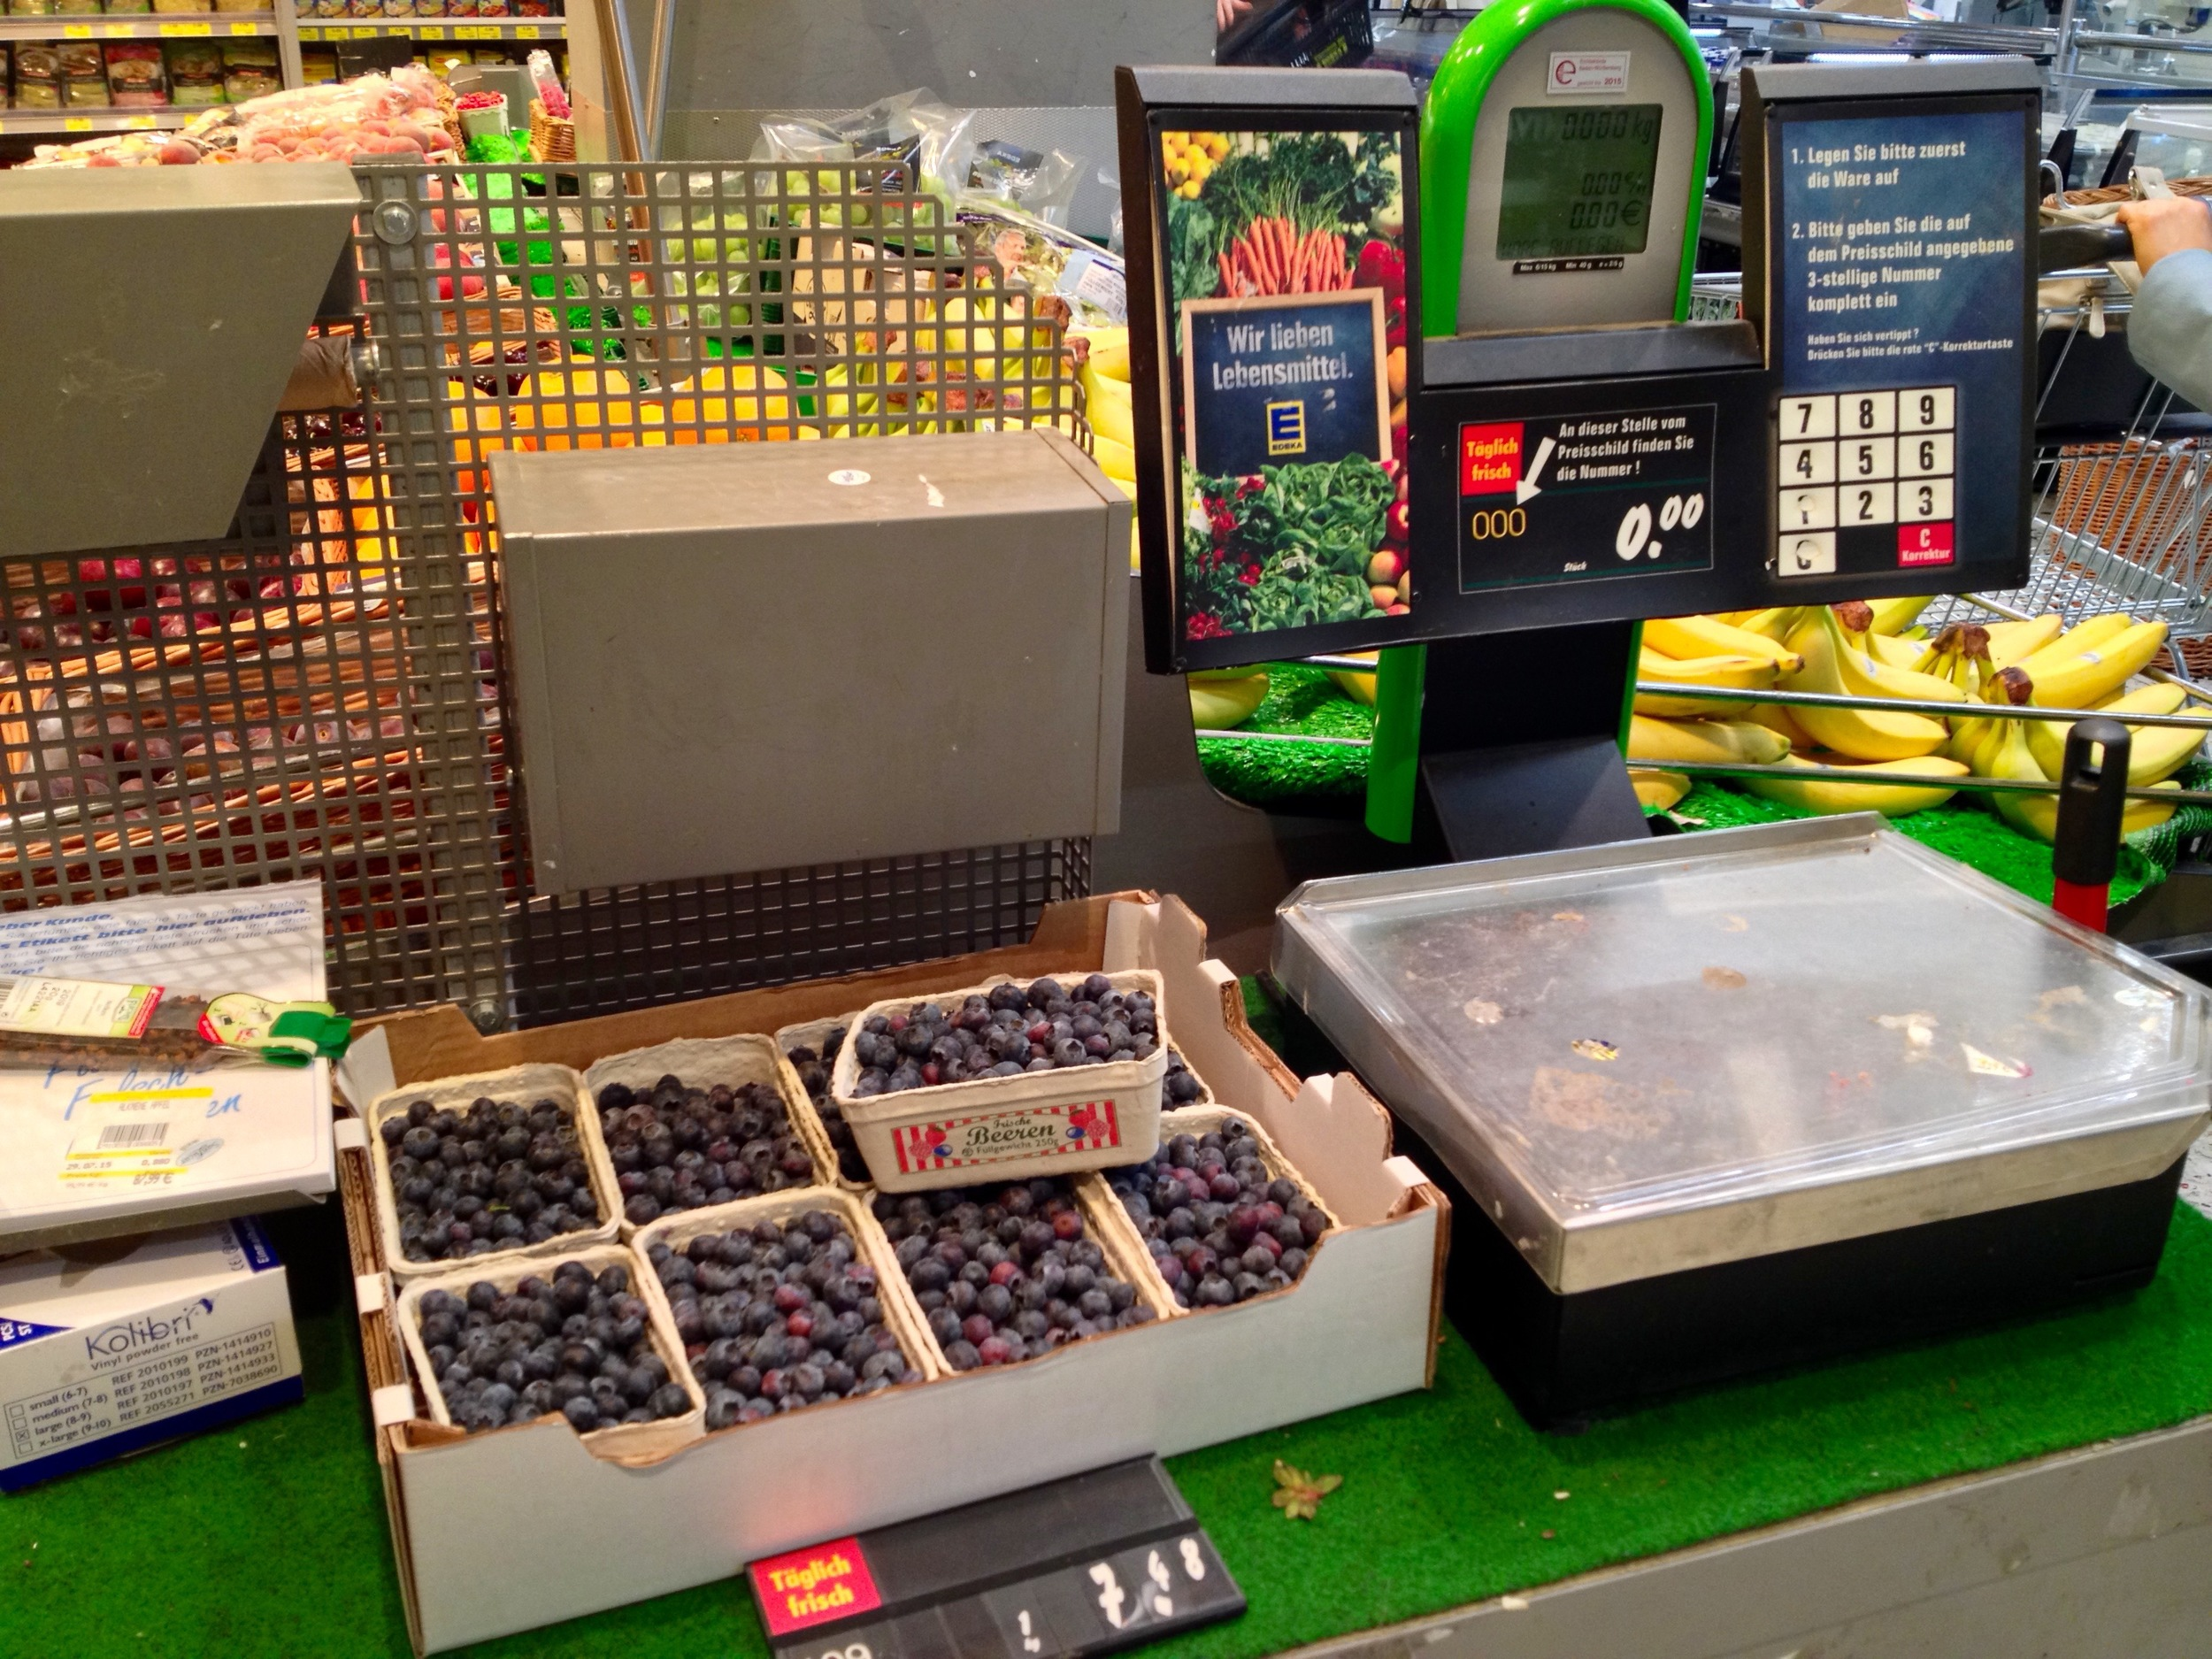 The scale to weigh your produce and print your price tag